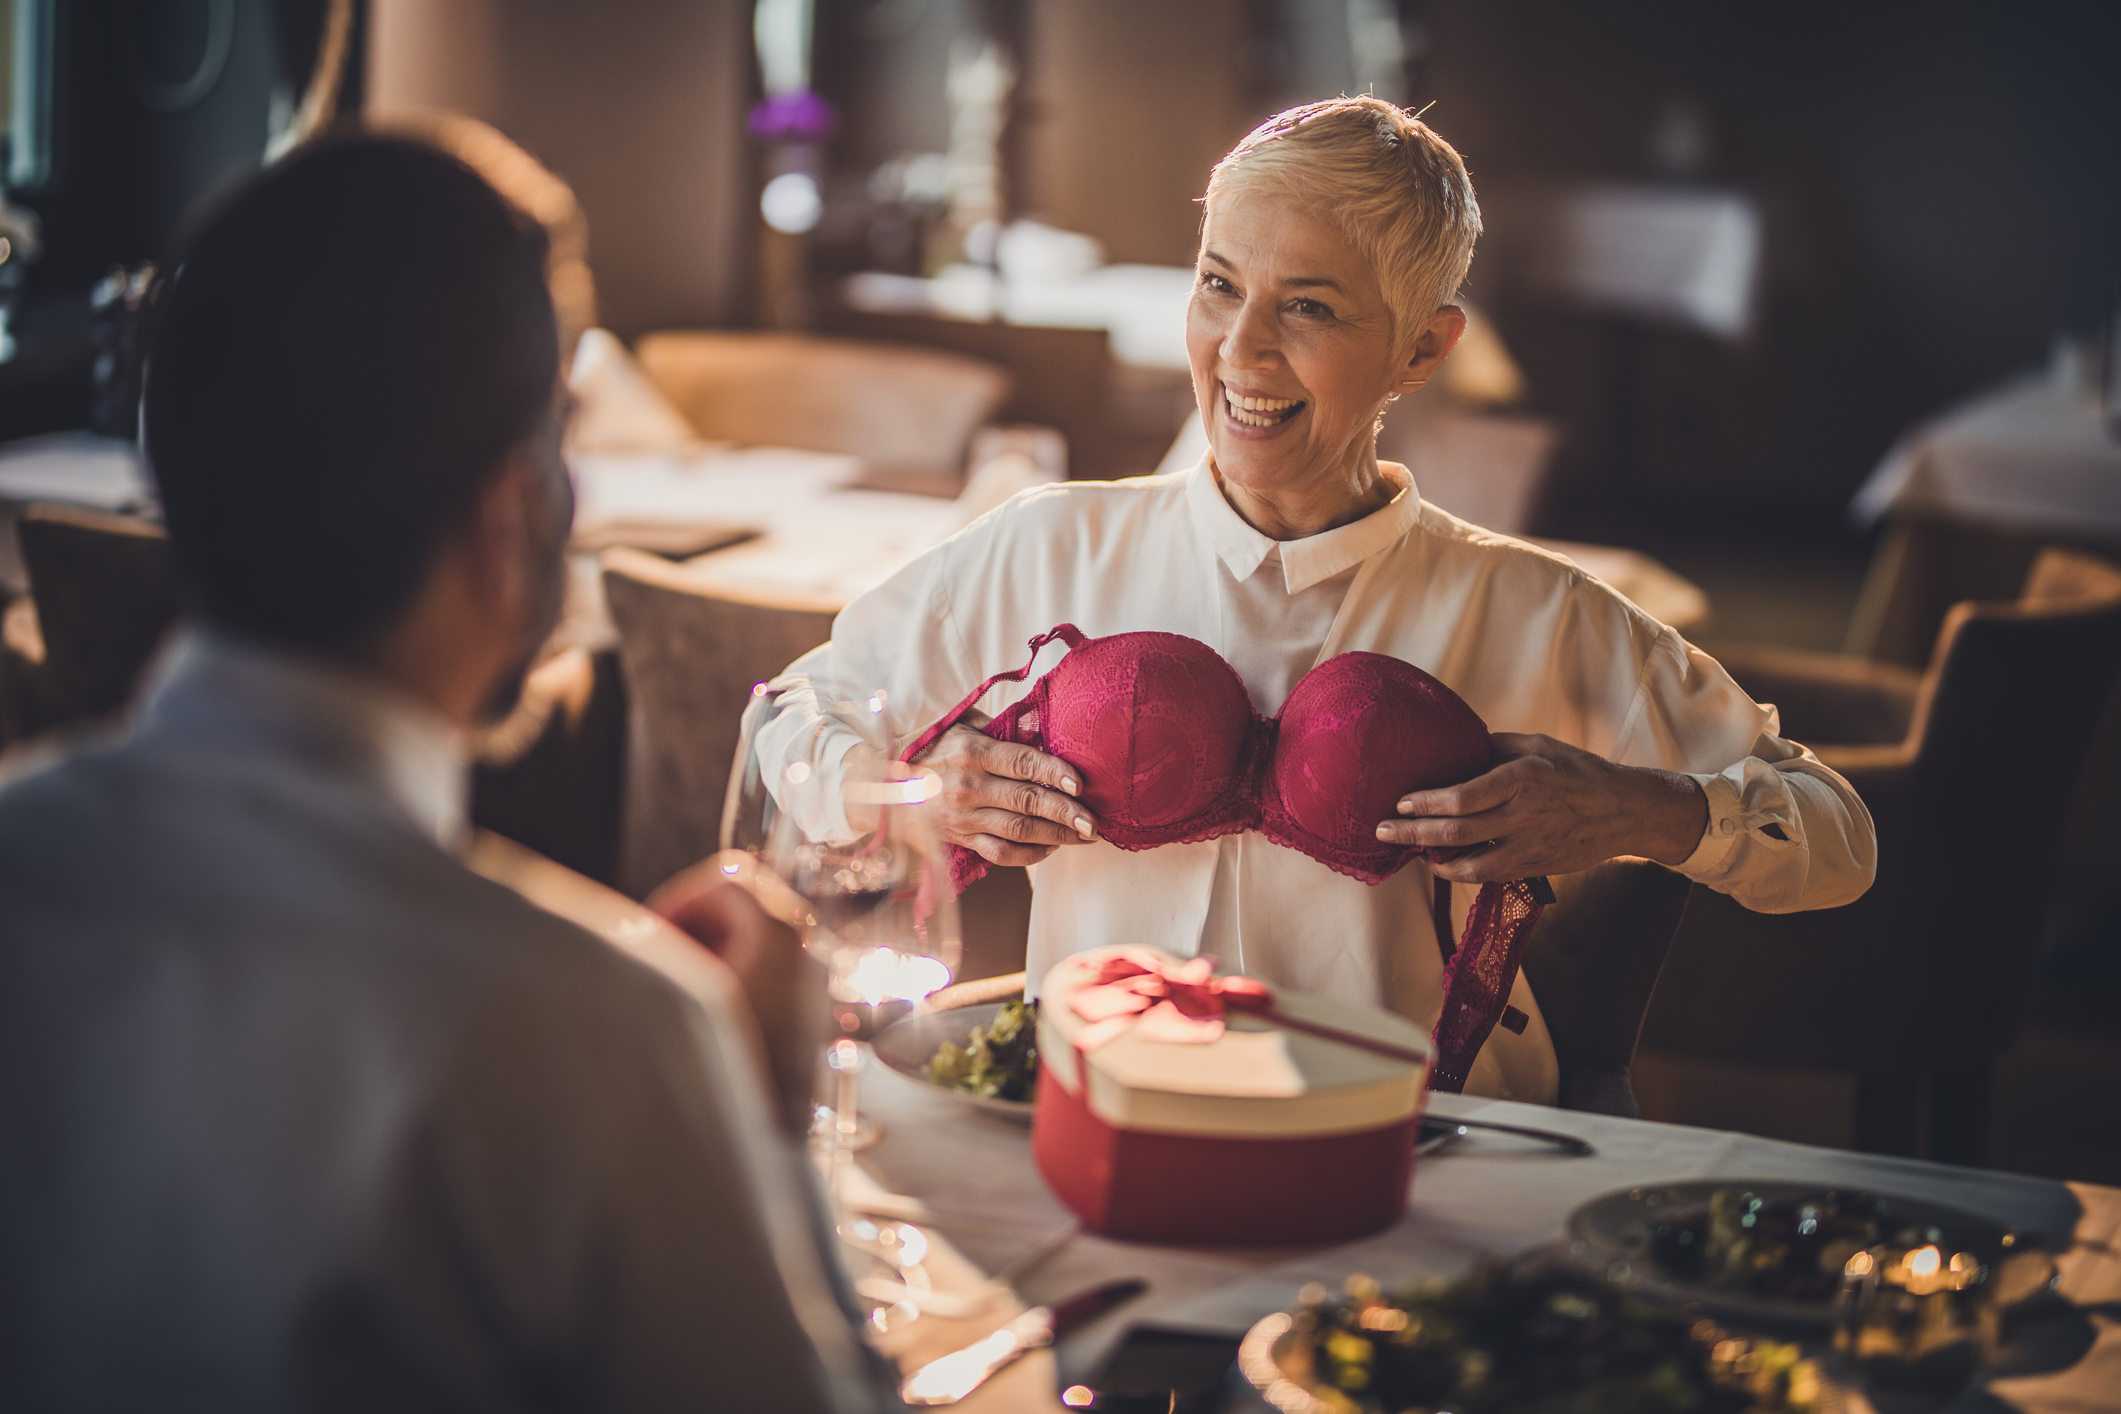 Playful senior woman having fun with her husband in a restaurant while trying on a bra he bought her.